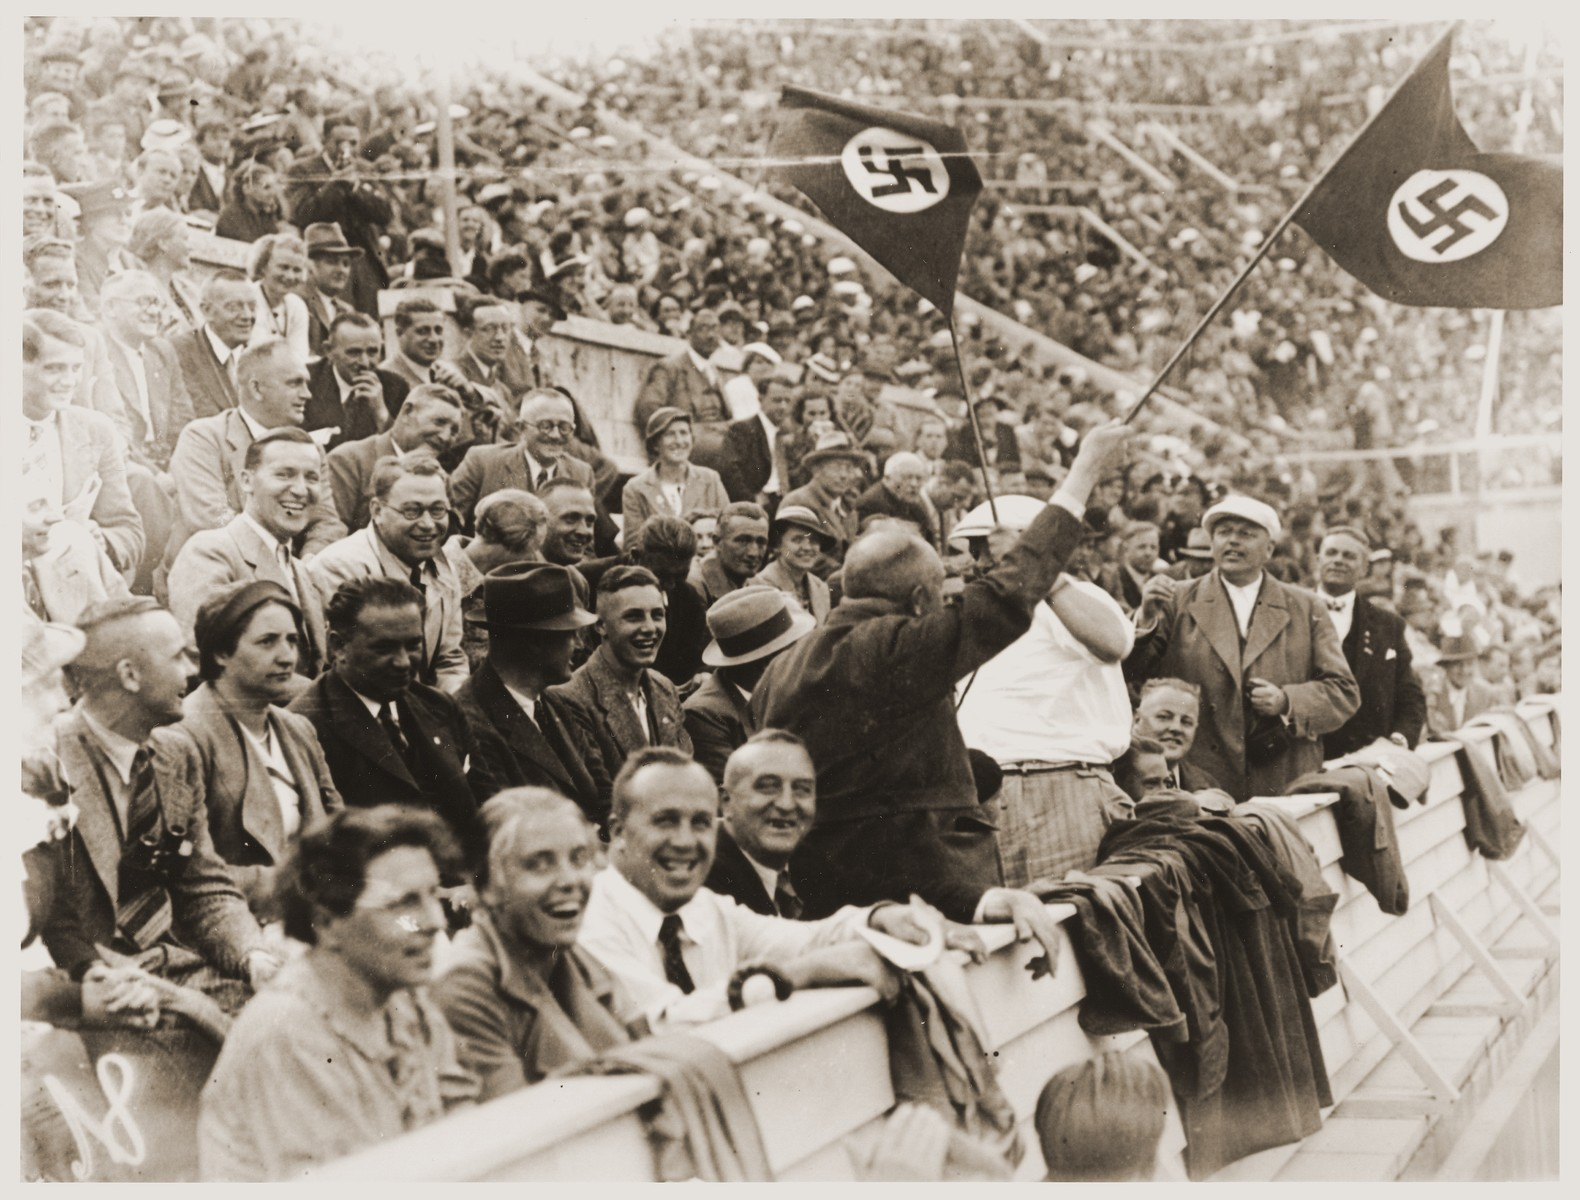 Spectators cheer on the Germans at the 11th Summer Olympic Games.